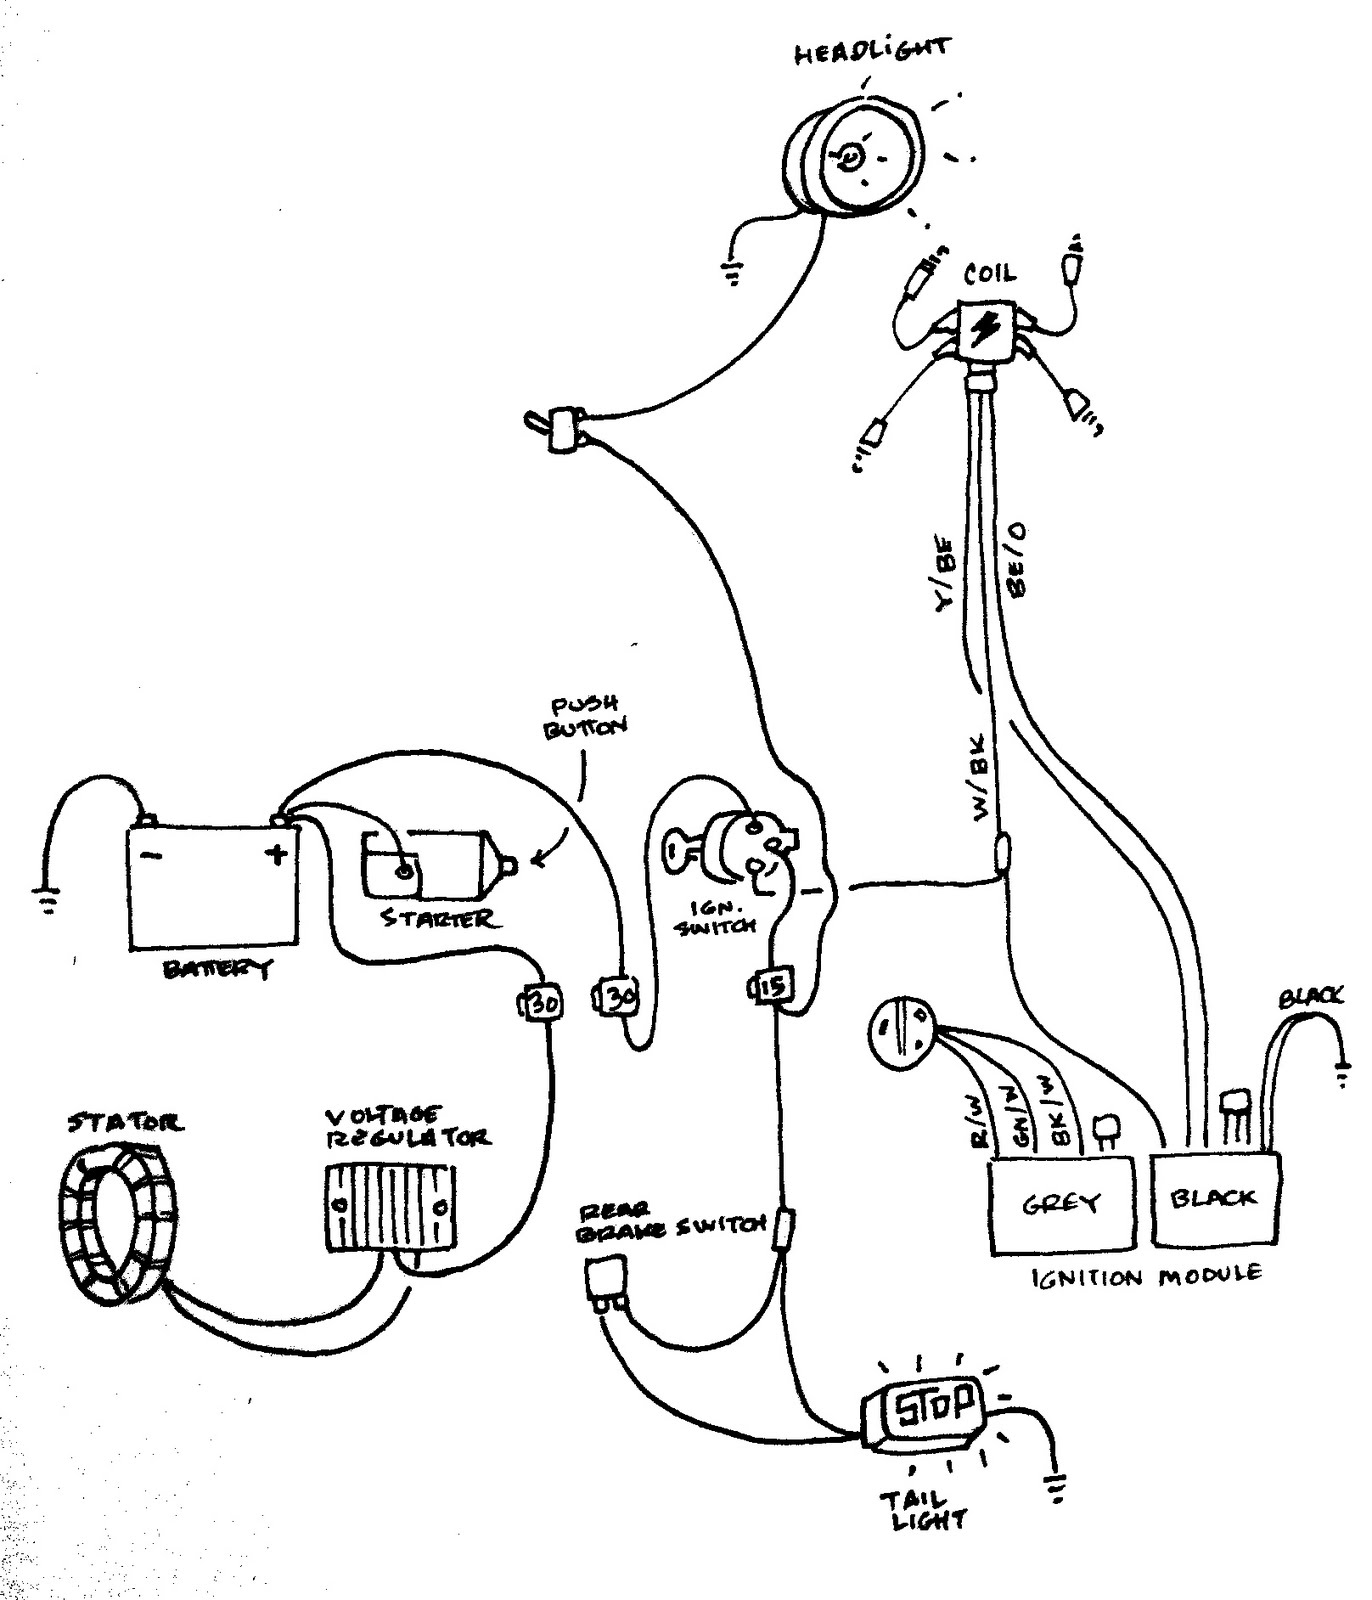 Ironhead Chopper Wiring Diagram 1981 Generous Sportster Contemporary Simple Rhlovetreatment